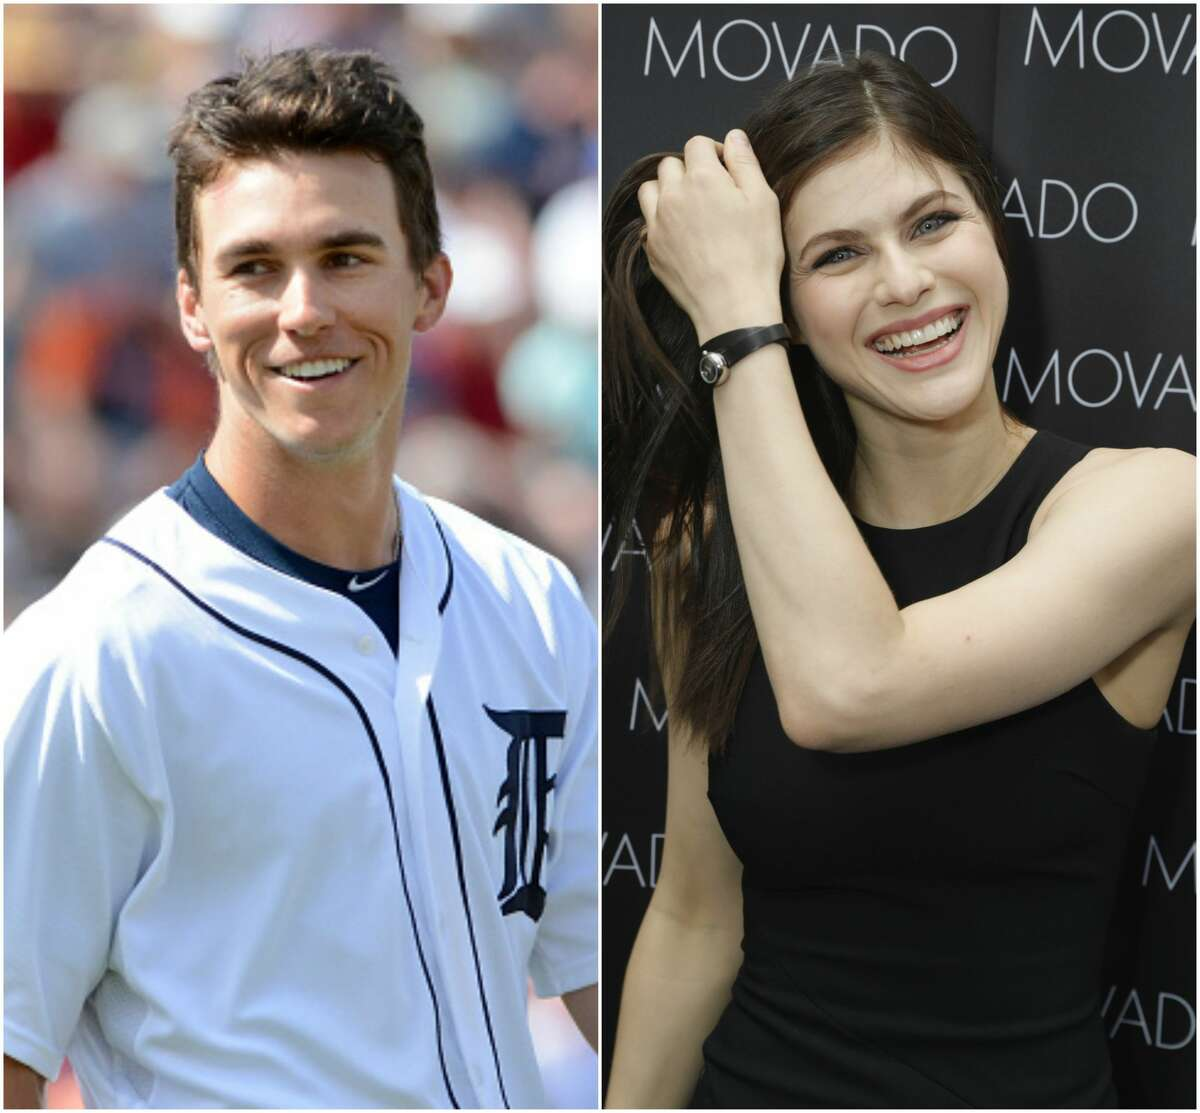 Ben Verlander is reportedly dating model and actress Alexandra Daddario. Ben is the little brother of Astros ace pitcher Justin Verlander. According to a report, the two met through Justin's wife Kate Upton. See celebrities and their siblings in the gallery ahead.